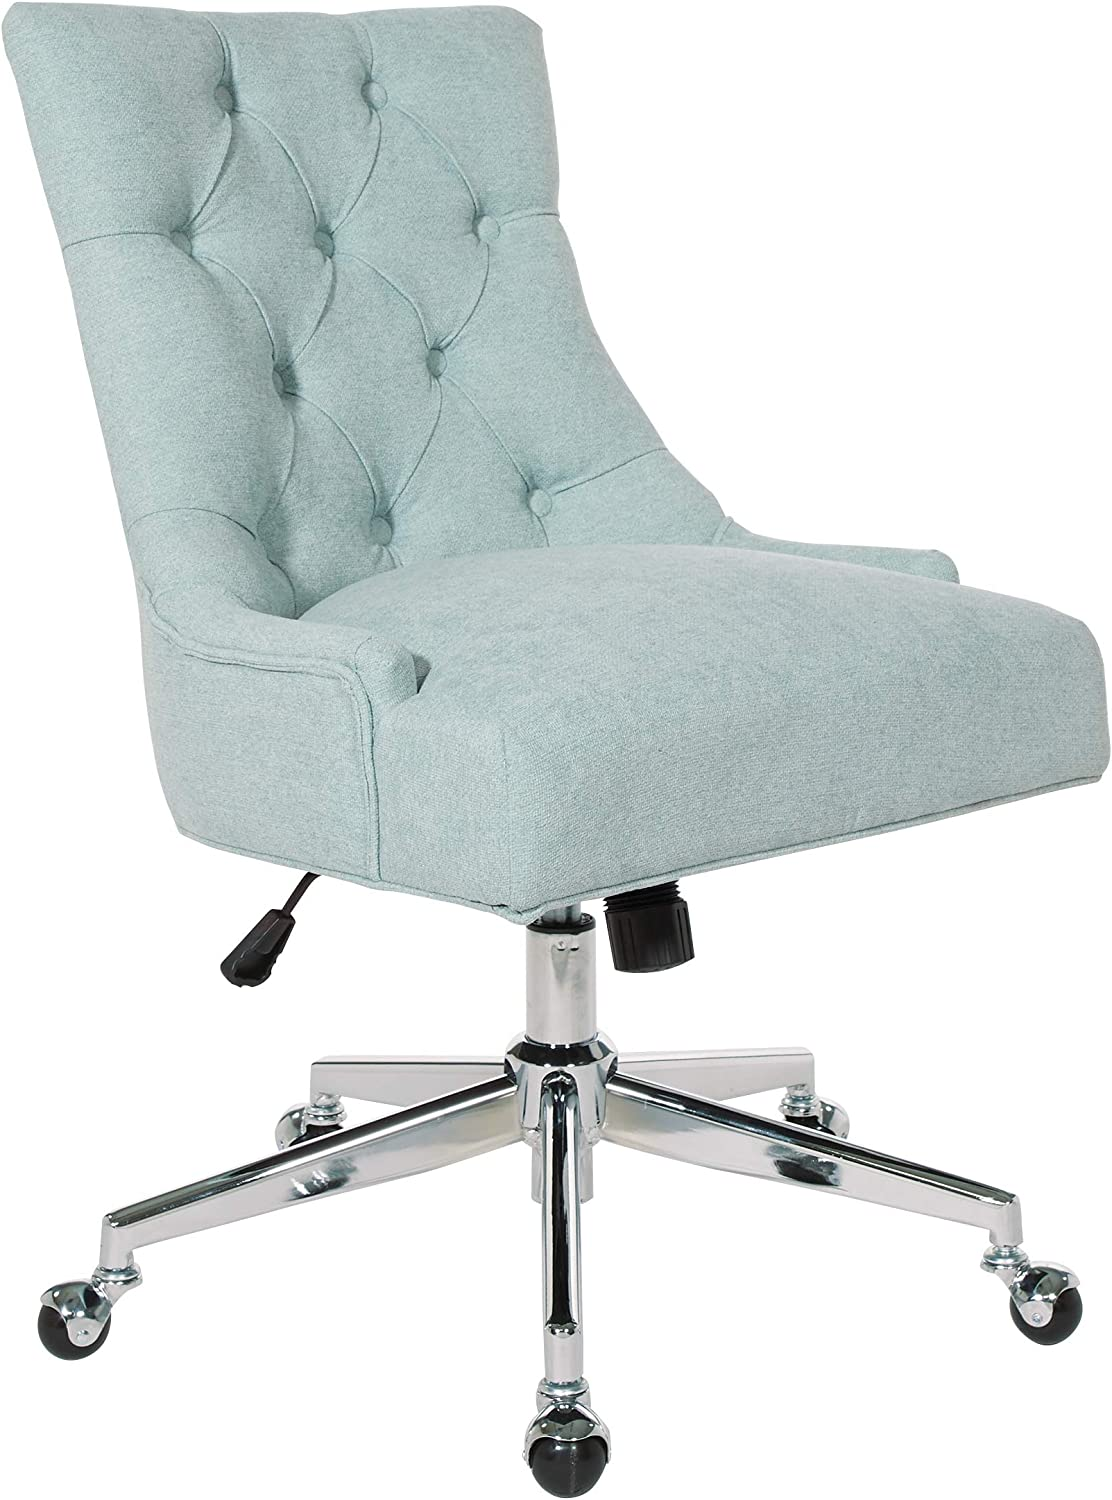 OSP Home Furnishings Amelia Office Chair, Mint